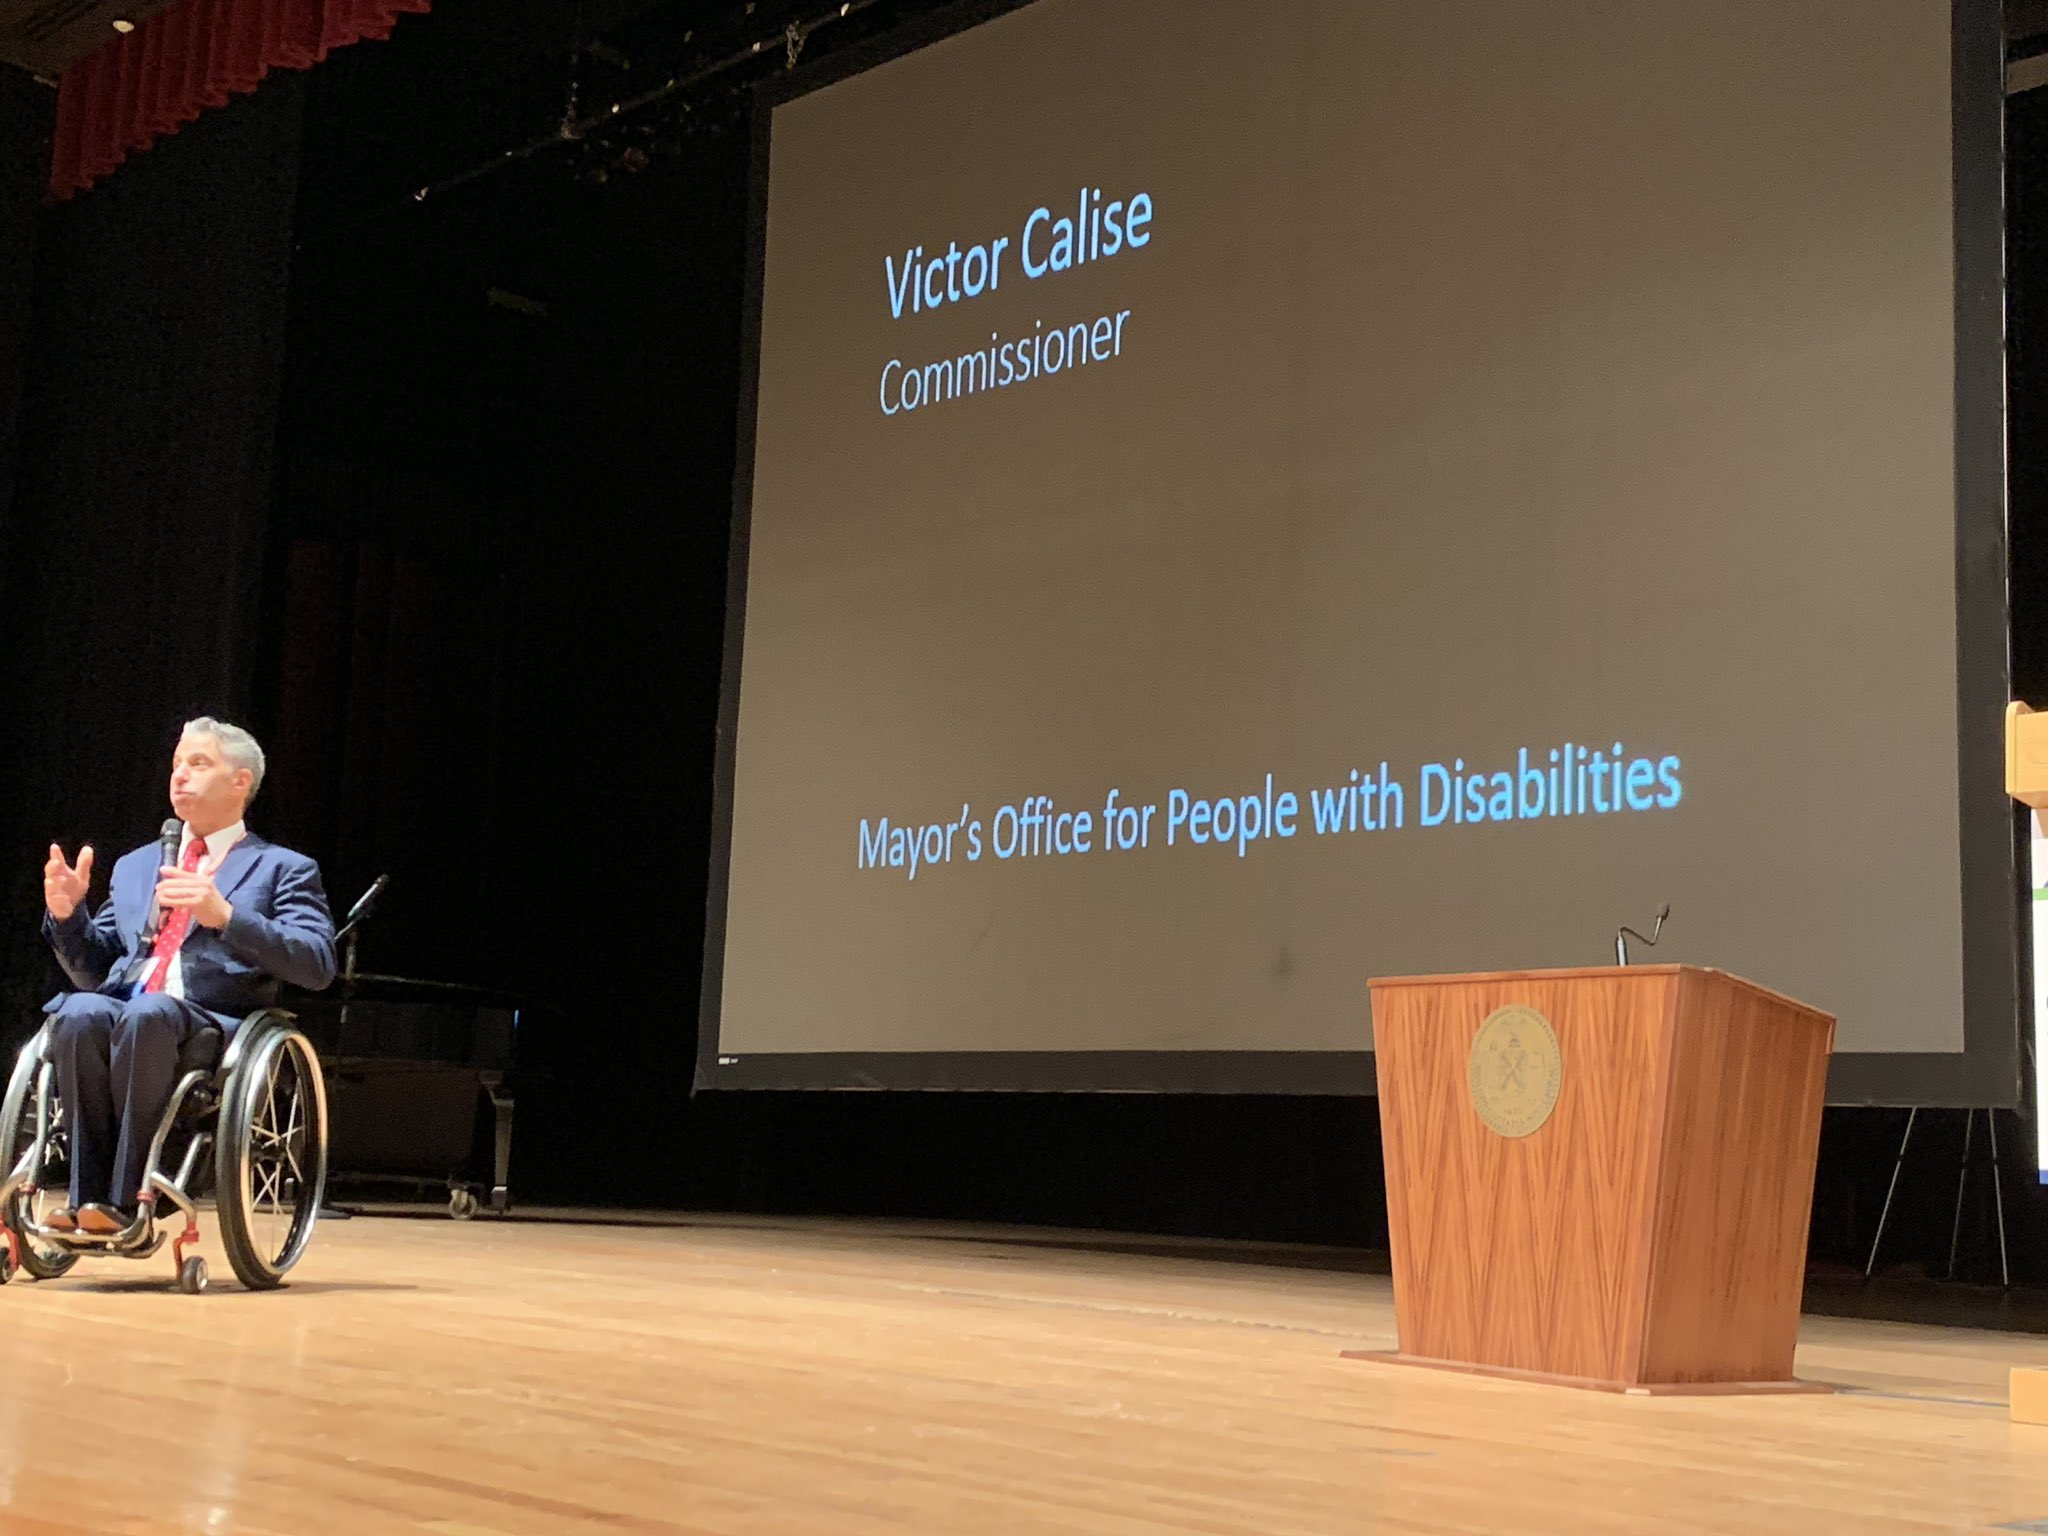 Victor Calise in a wheelchair on stage speaking beside a wheelchair podium